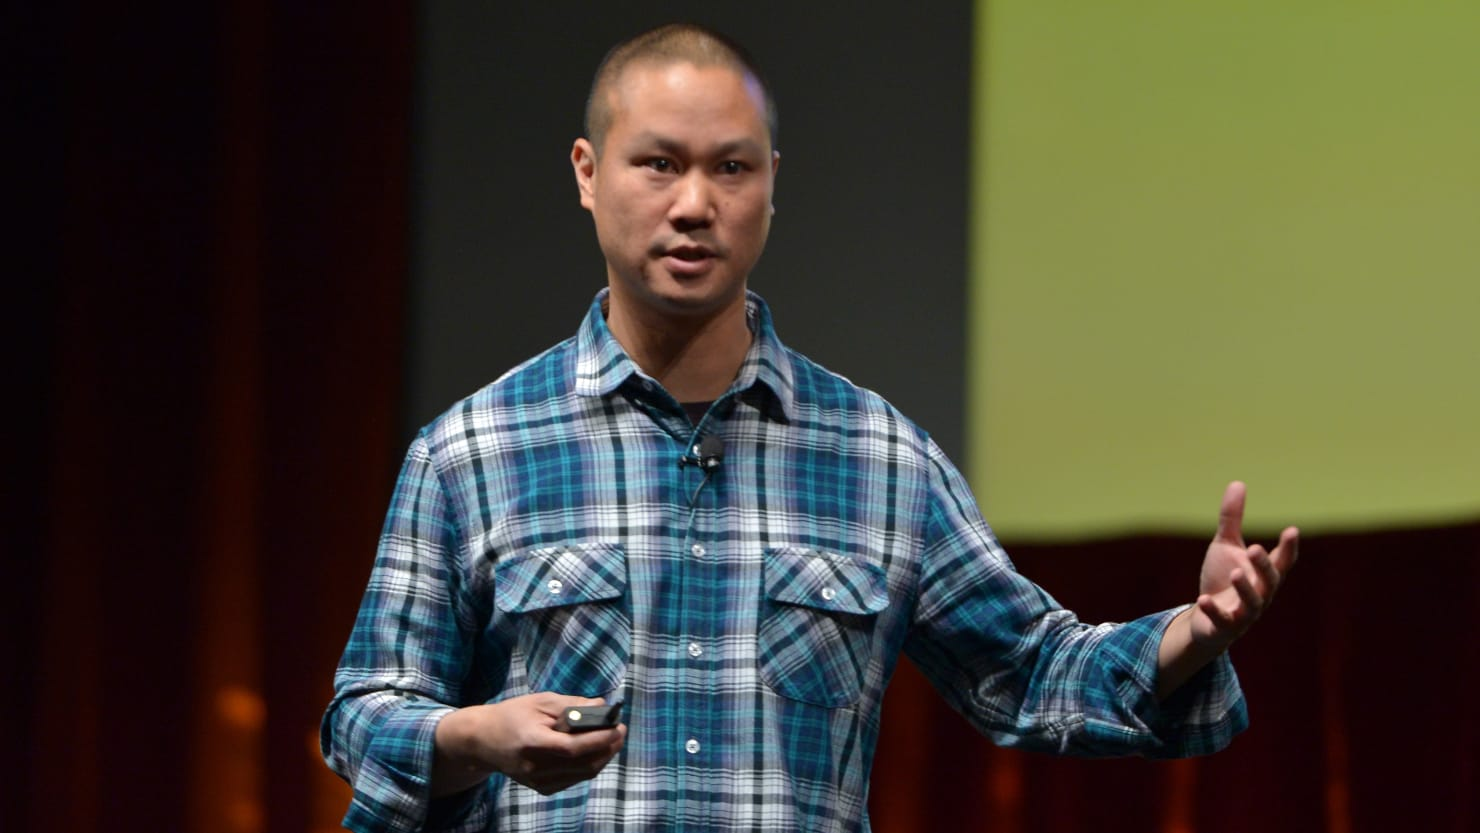 The Final, Tragic Months of Tony Hsieh's Life